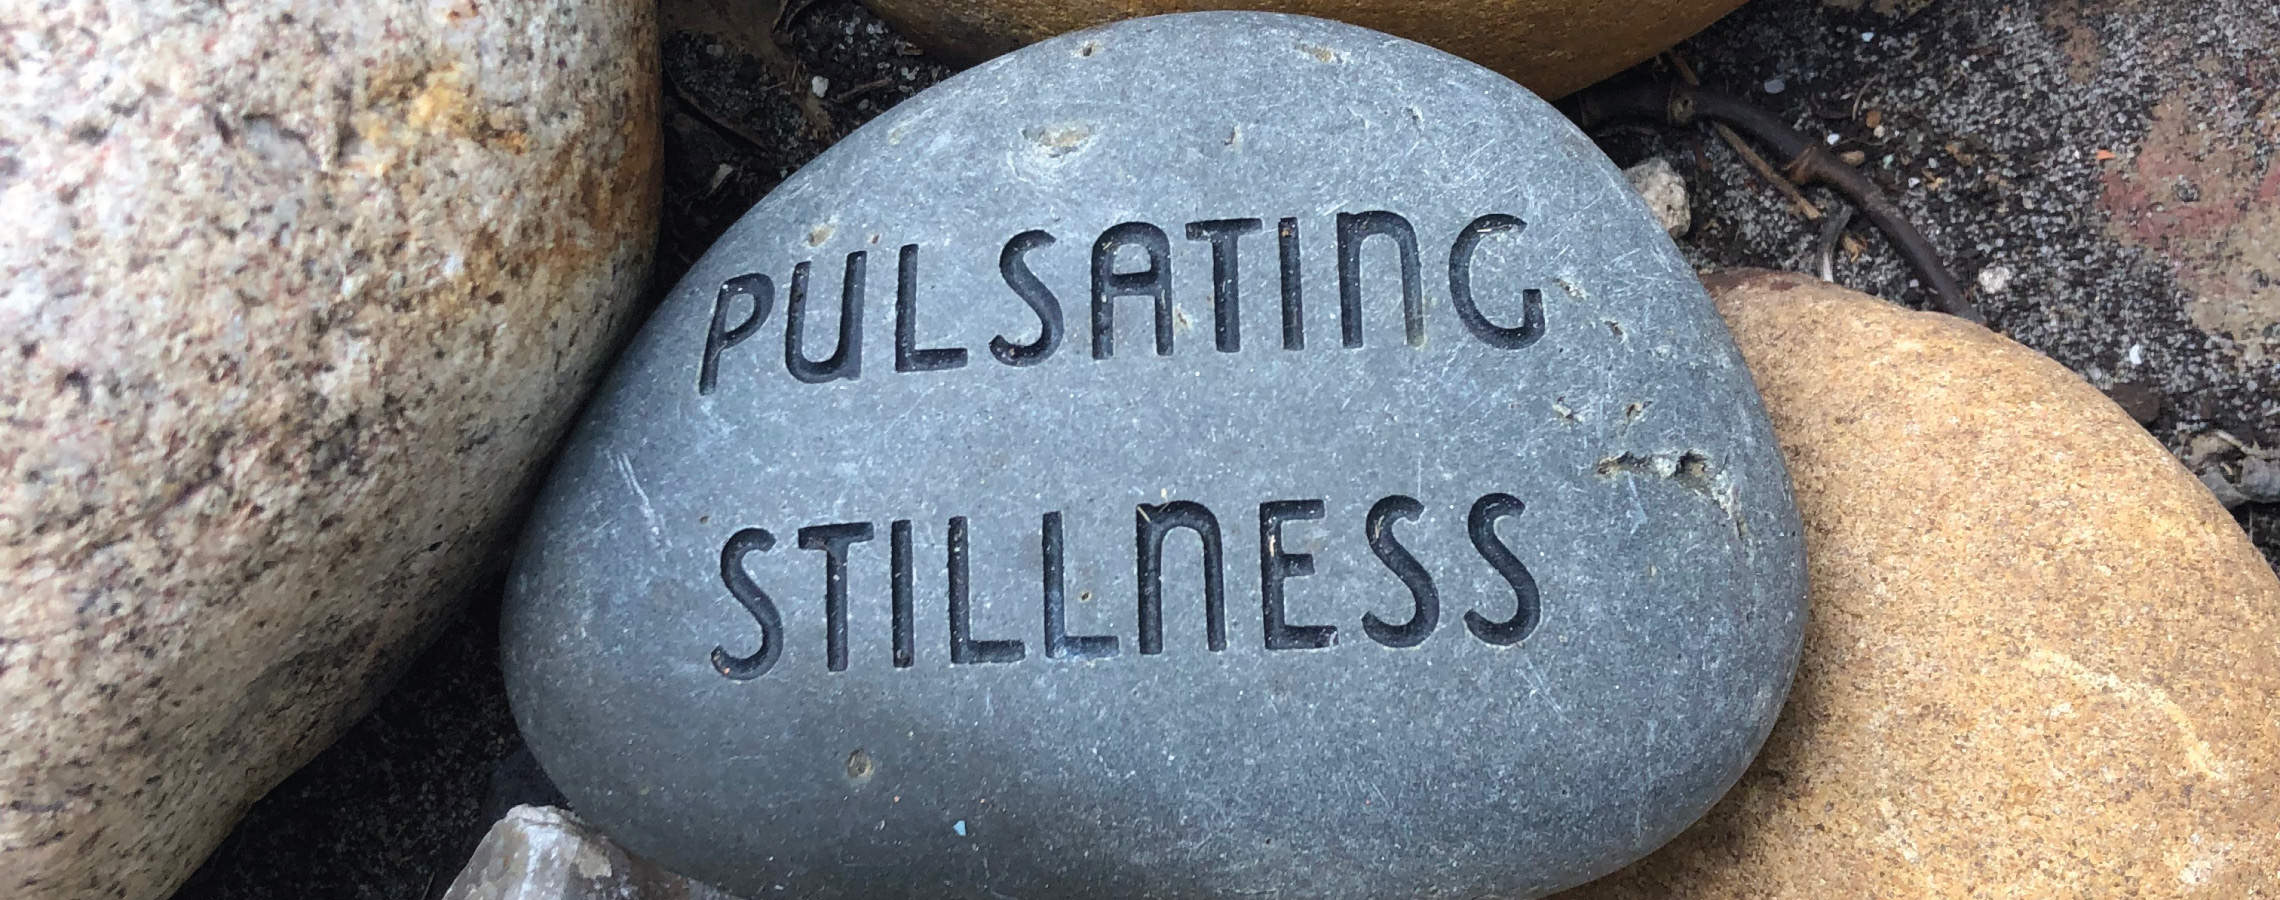 Pulsating Stillness